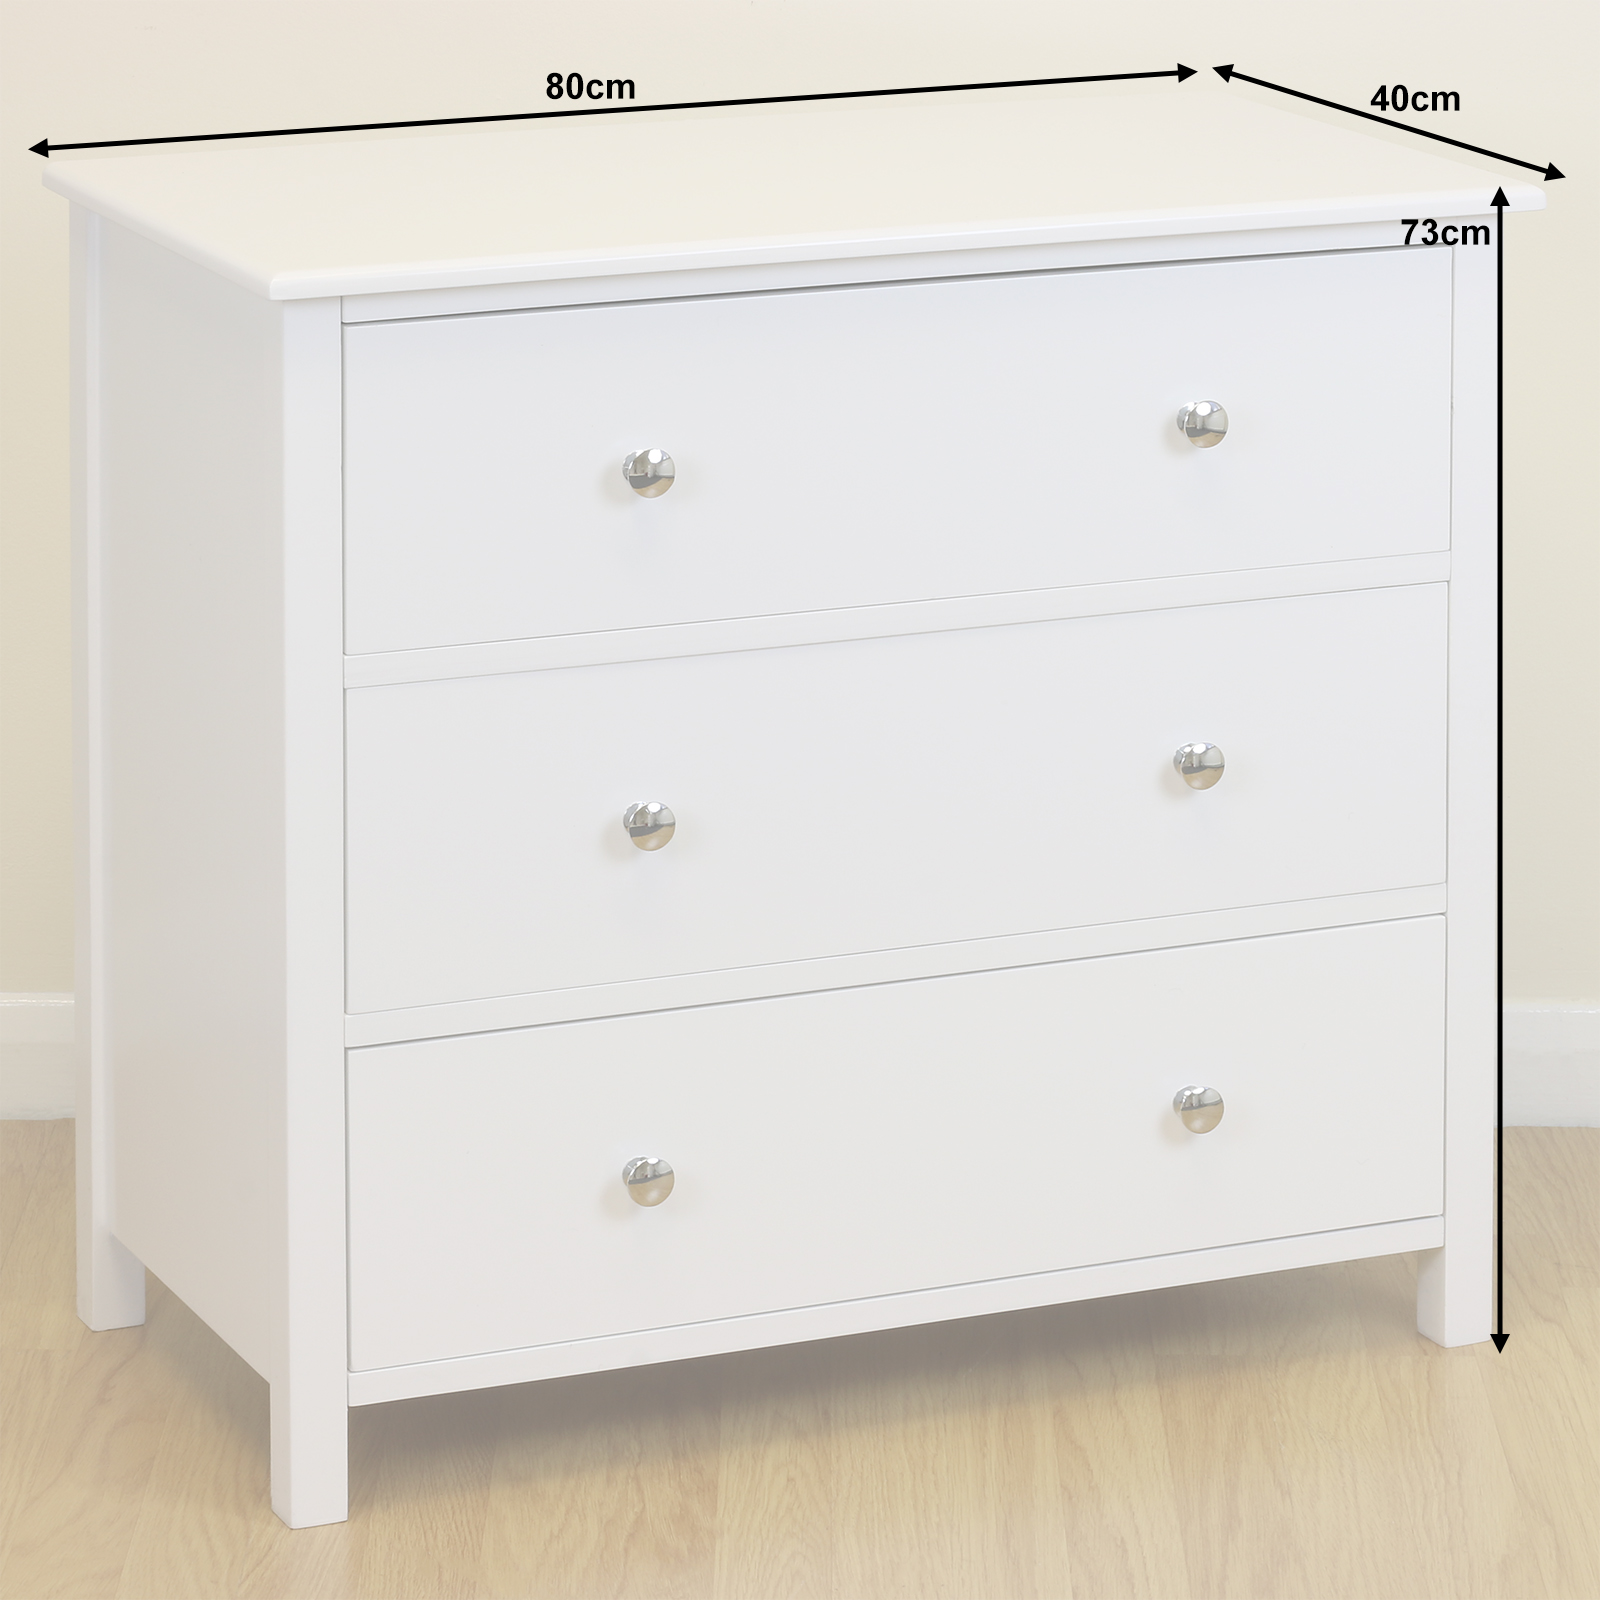 White wooden 3 drawer wide chest unit cabinet bedroom - Bedroom storage cabinets with drawers ...